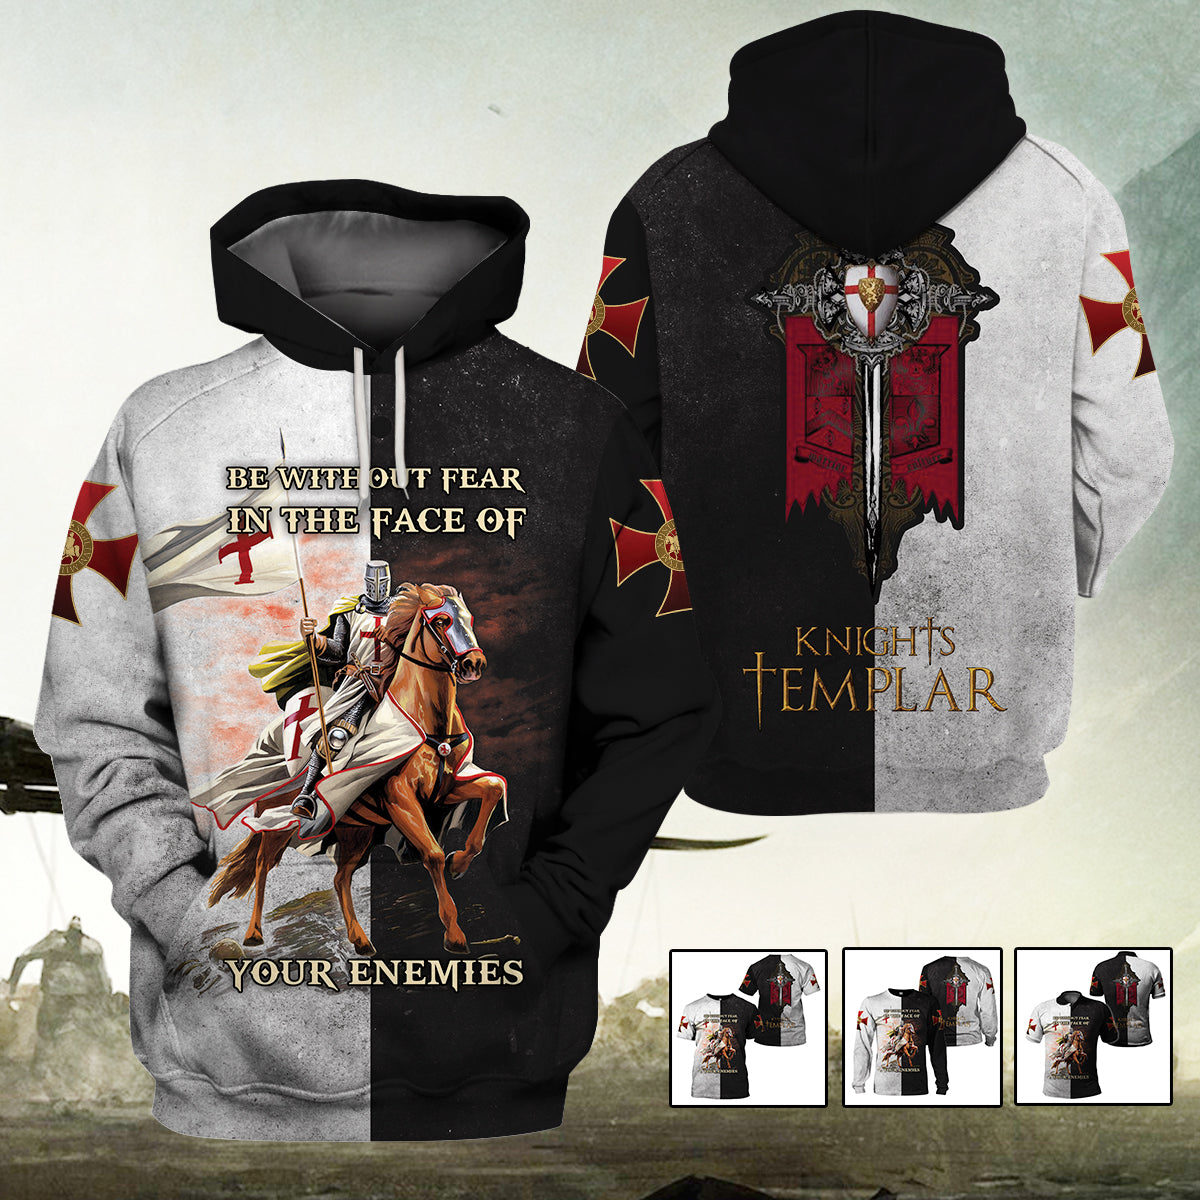 3D Knights Templar - Be without fear in the face of your enemies